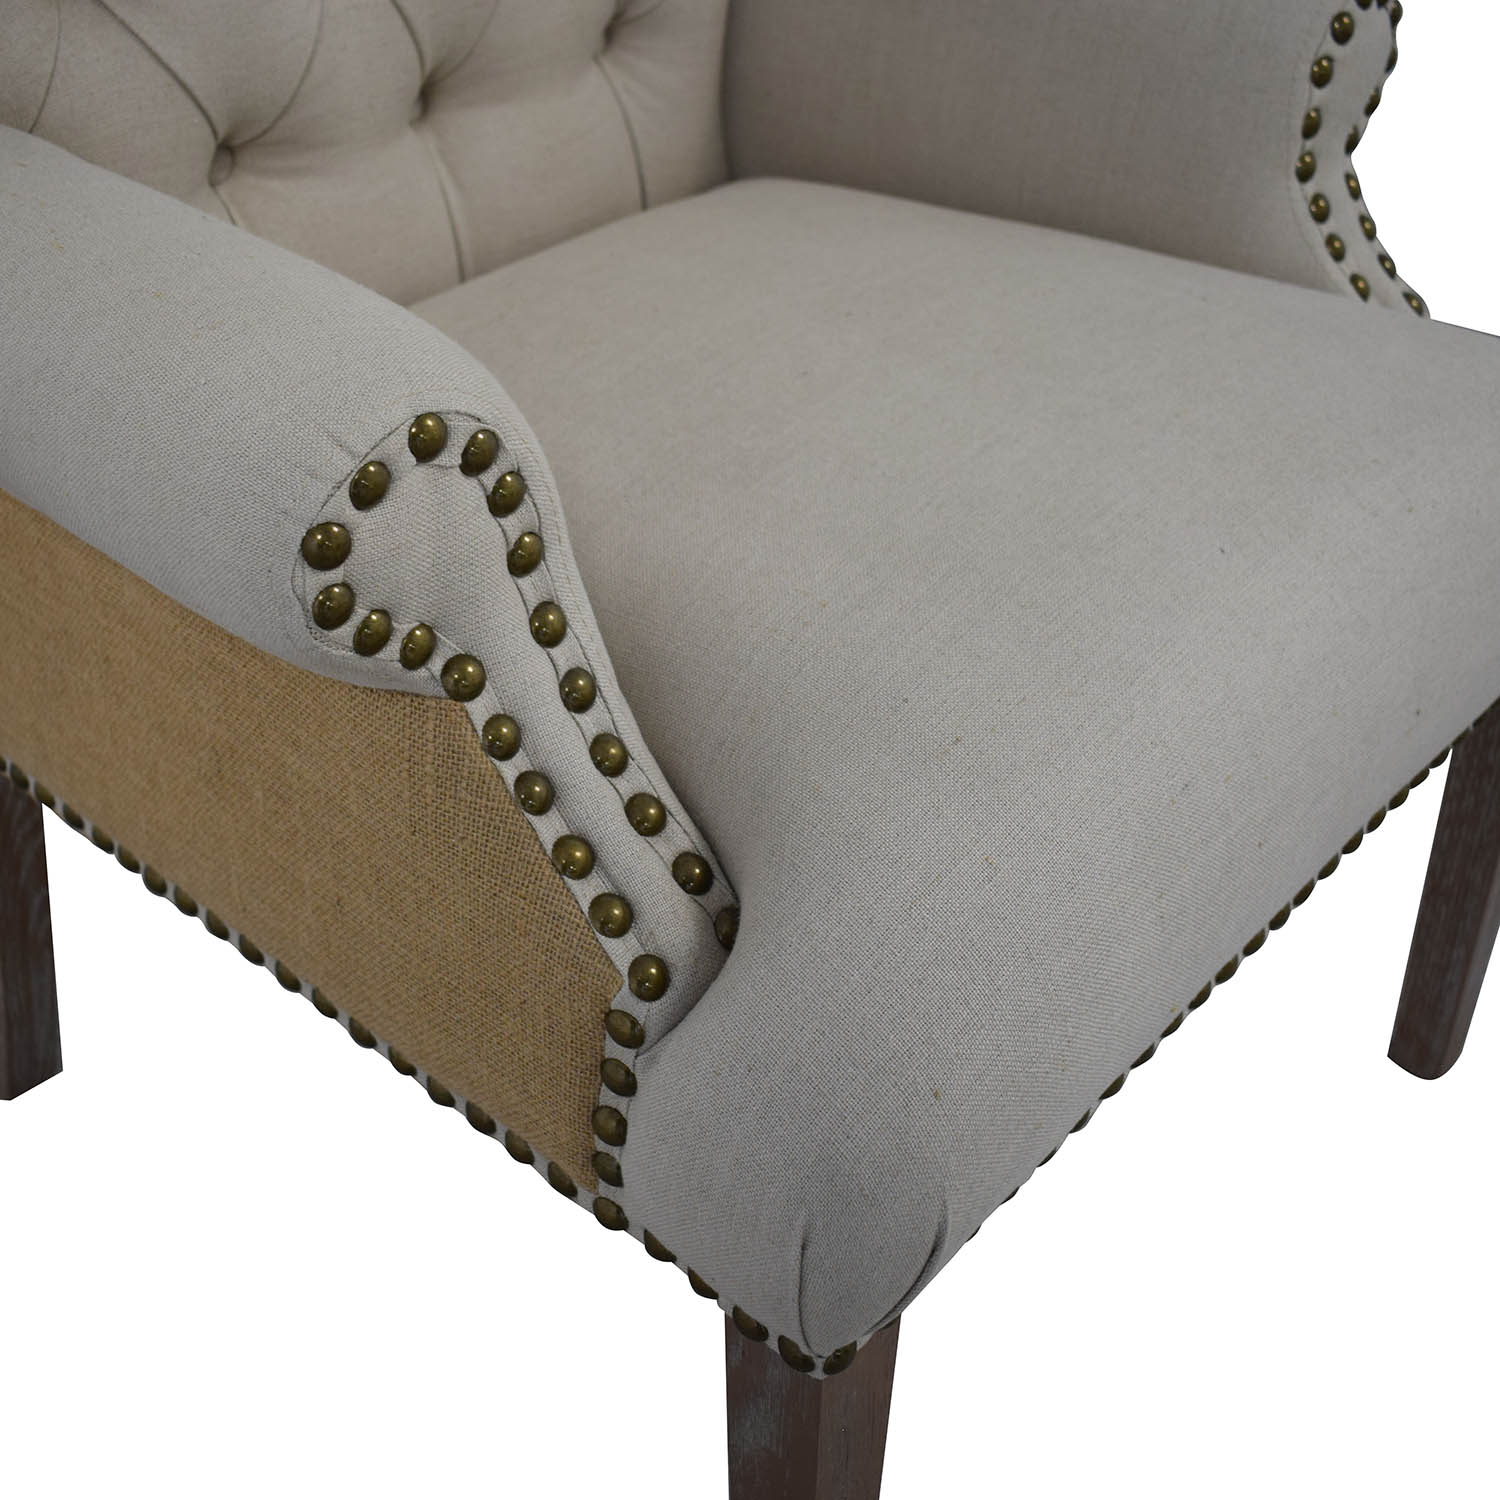 Hickory Chair Hickory Chair Traditional Lounge Chair Accent Chairs